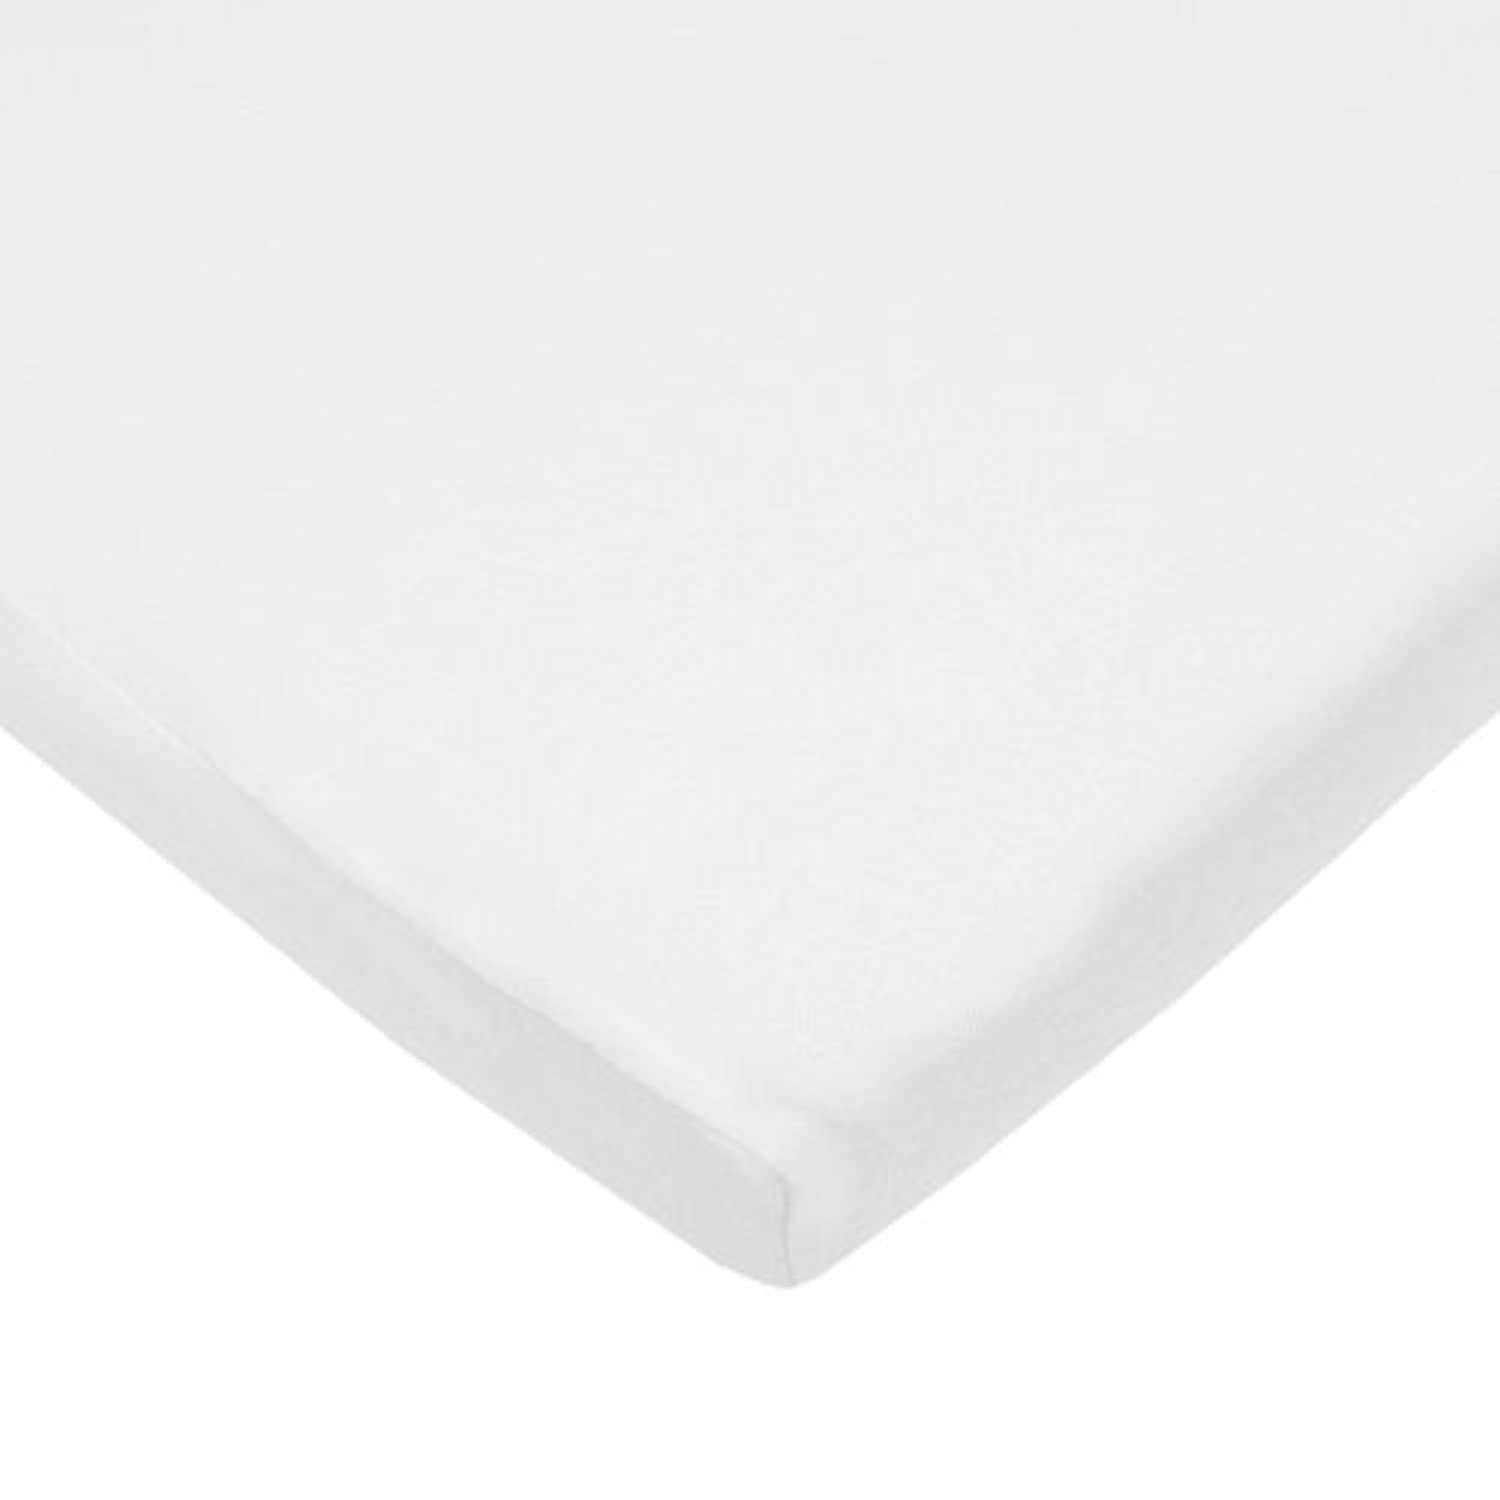 American Baby Company 100% Cotton Supreme Jersey Knit Fitted Cradle Sheet, White by American Baby Company